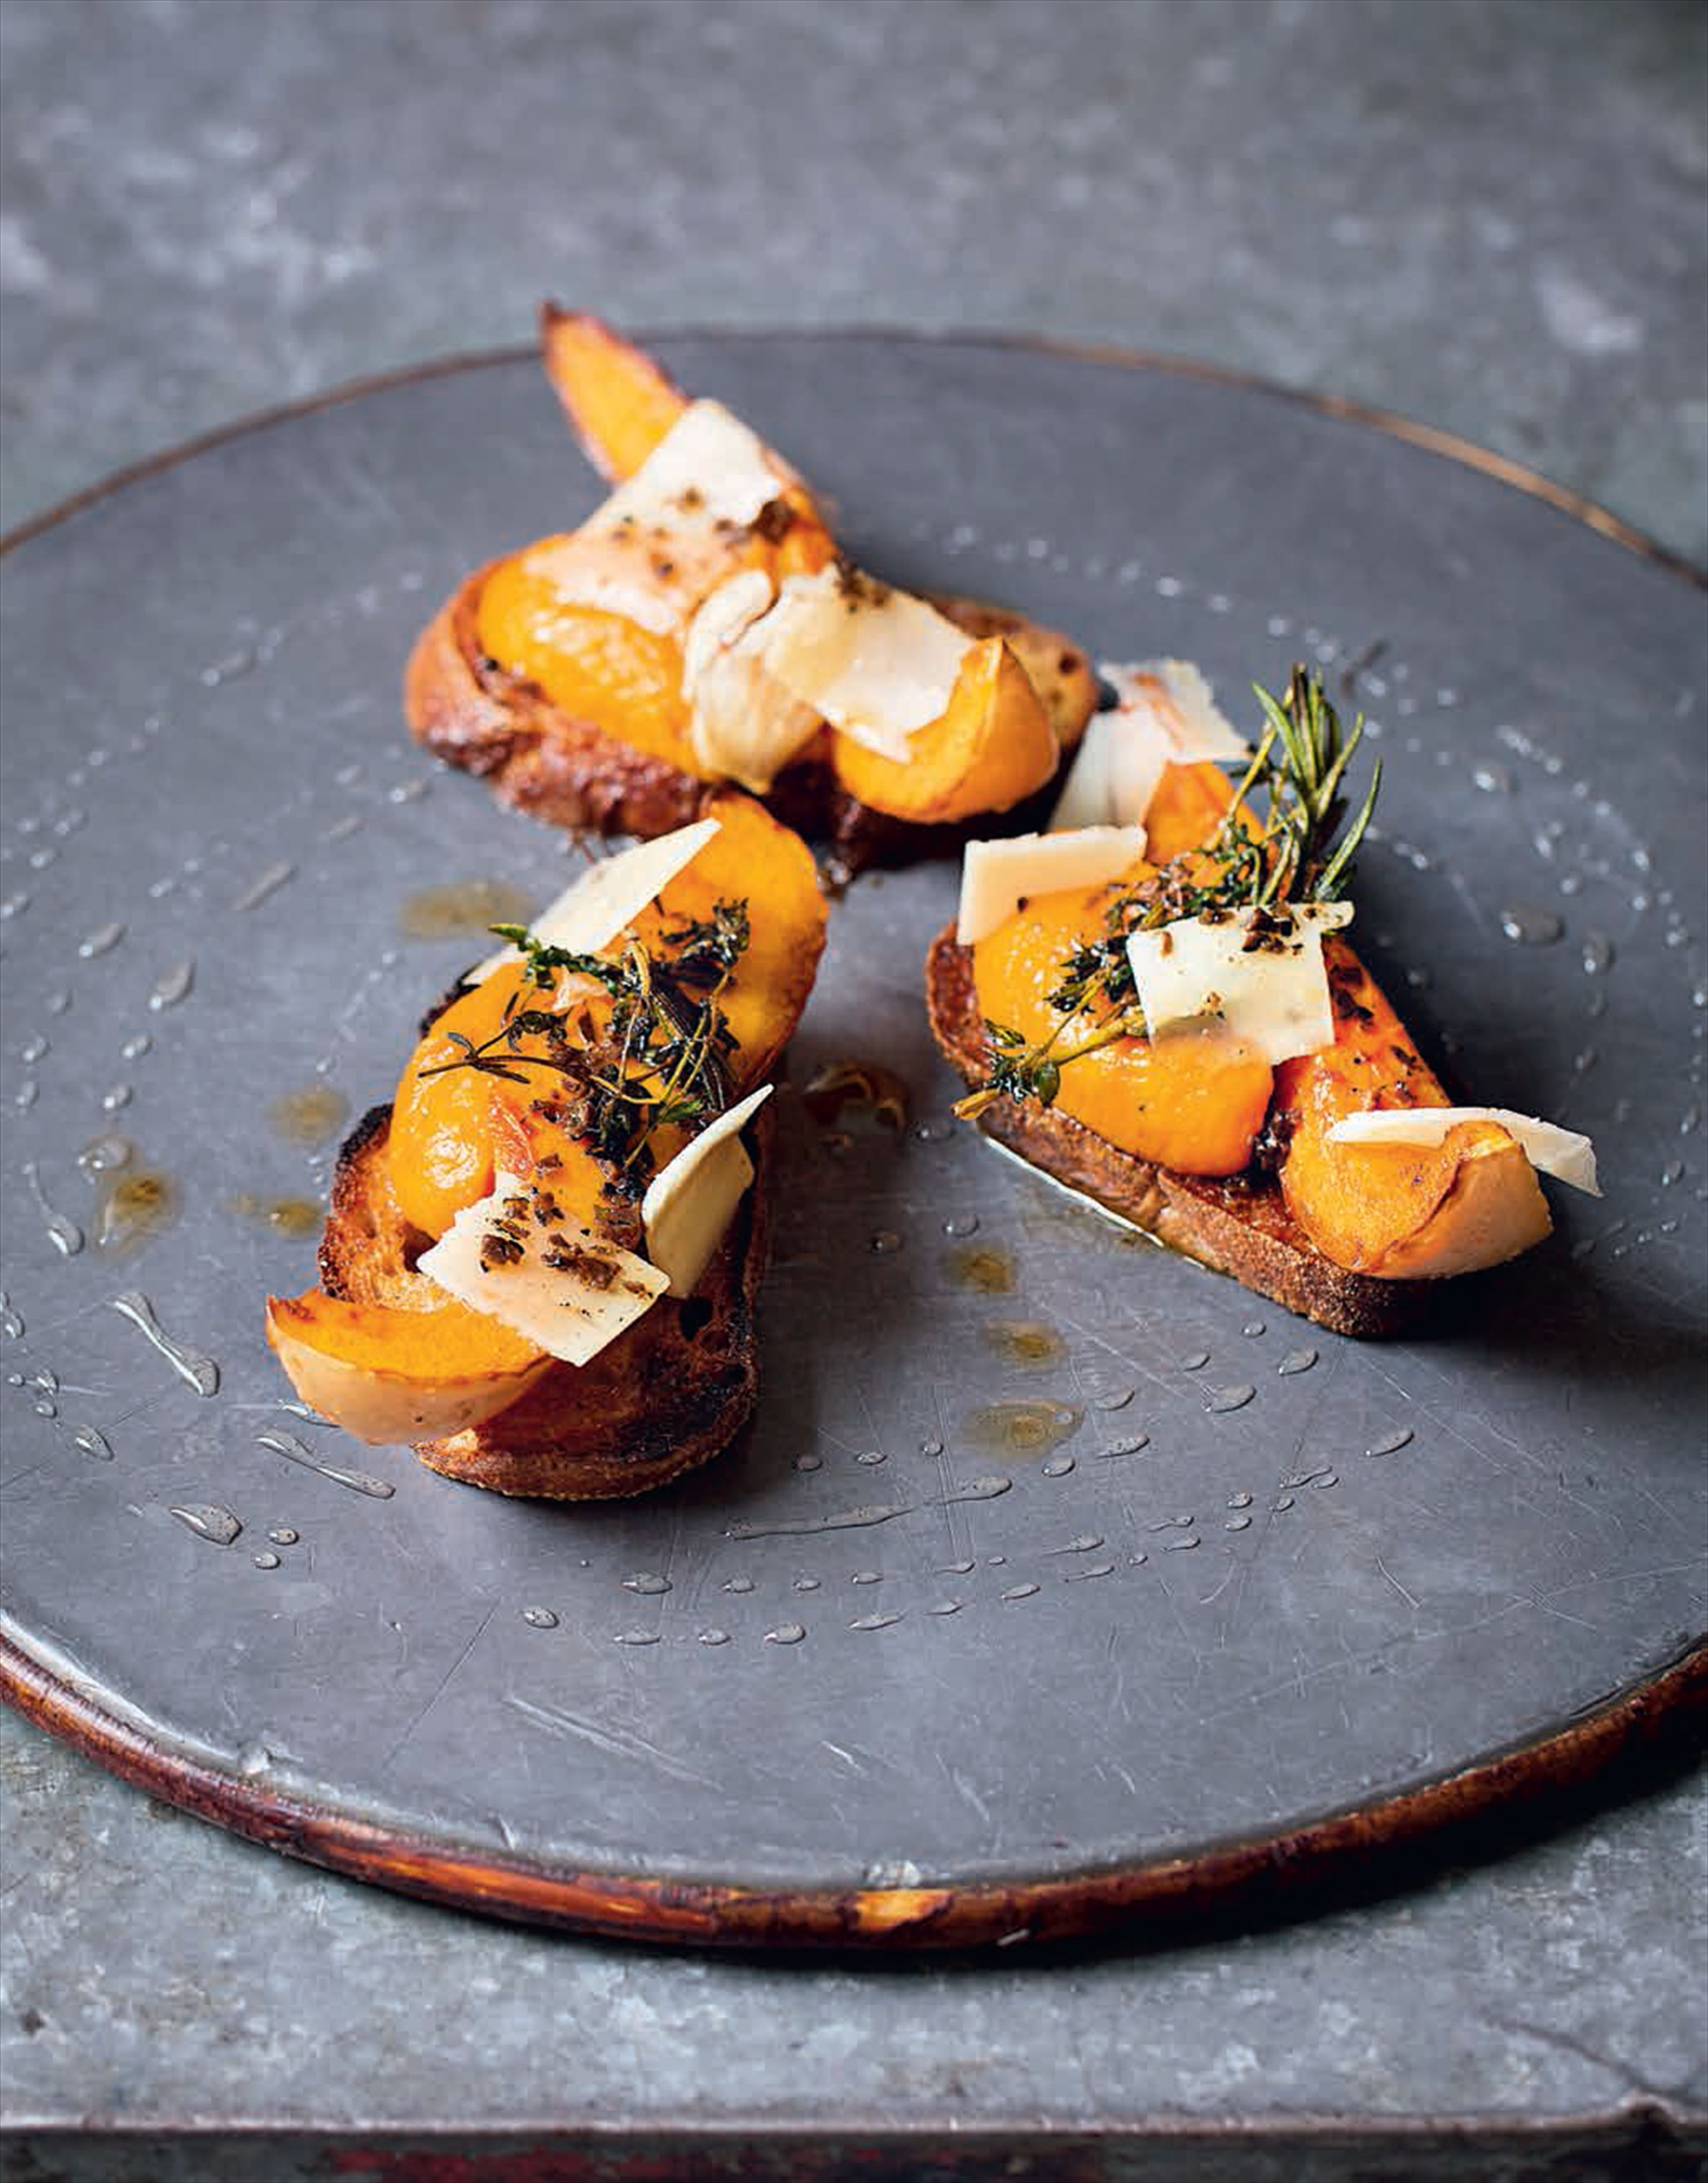 Roasted butternut squash, squash purée, parmesan, toast and thyme